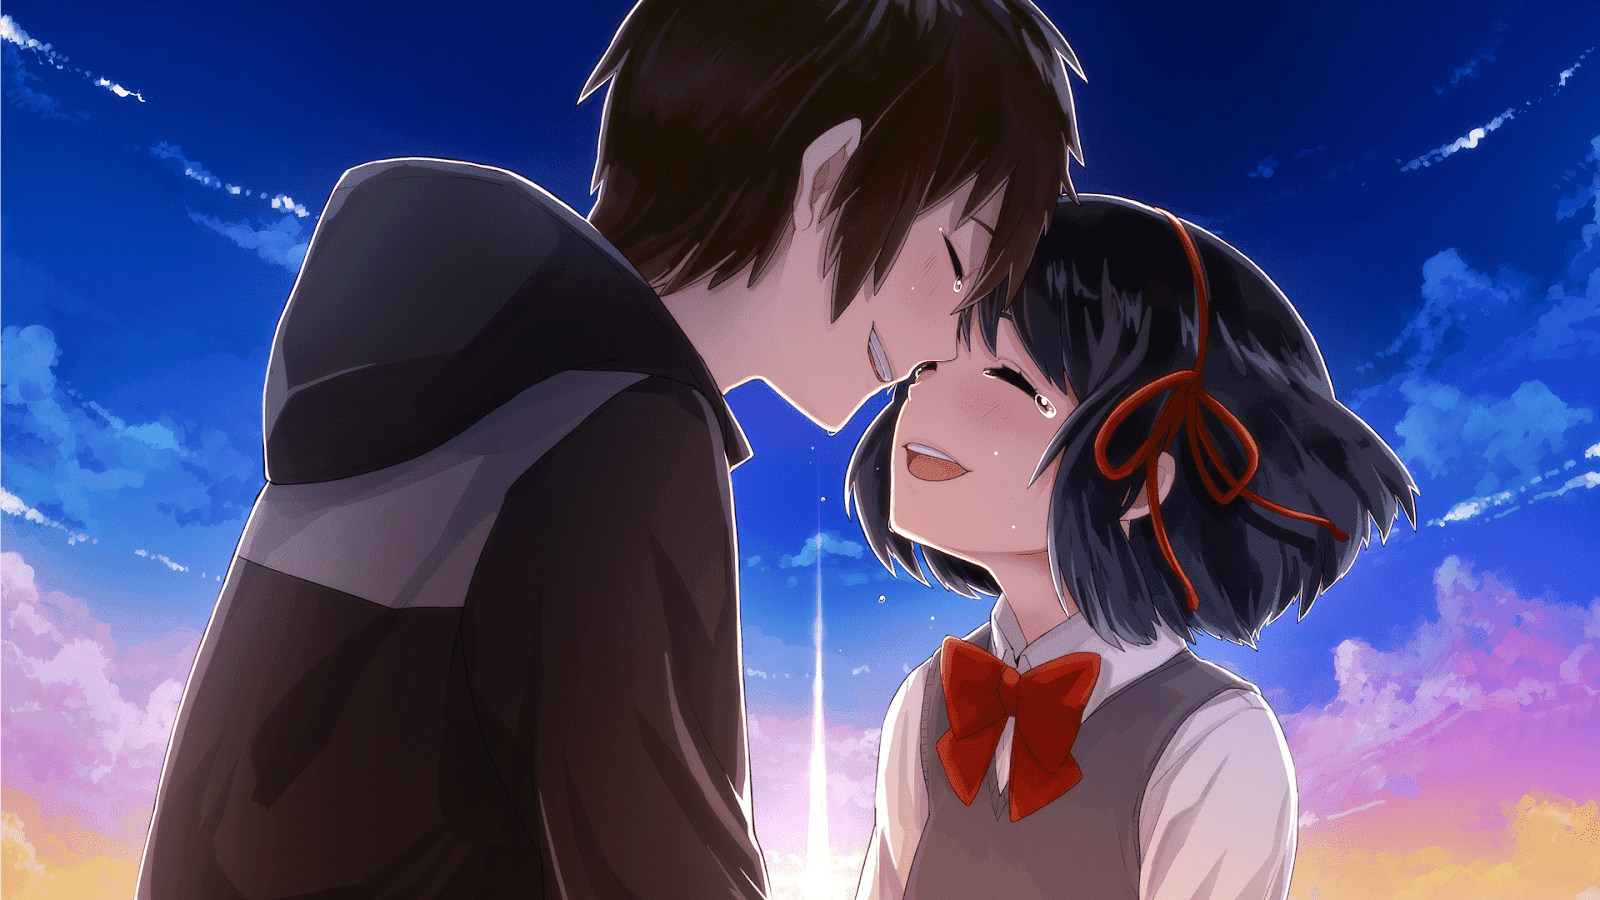 AowVN%2B%252846%2529 - [ Hình Nền ] Anime Your Name. - Kimi no Nawa full HD cực đẹp | Anime Wallpaper